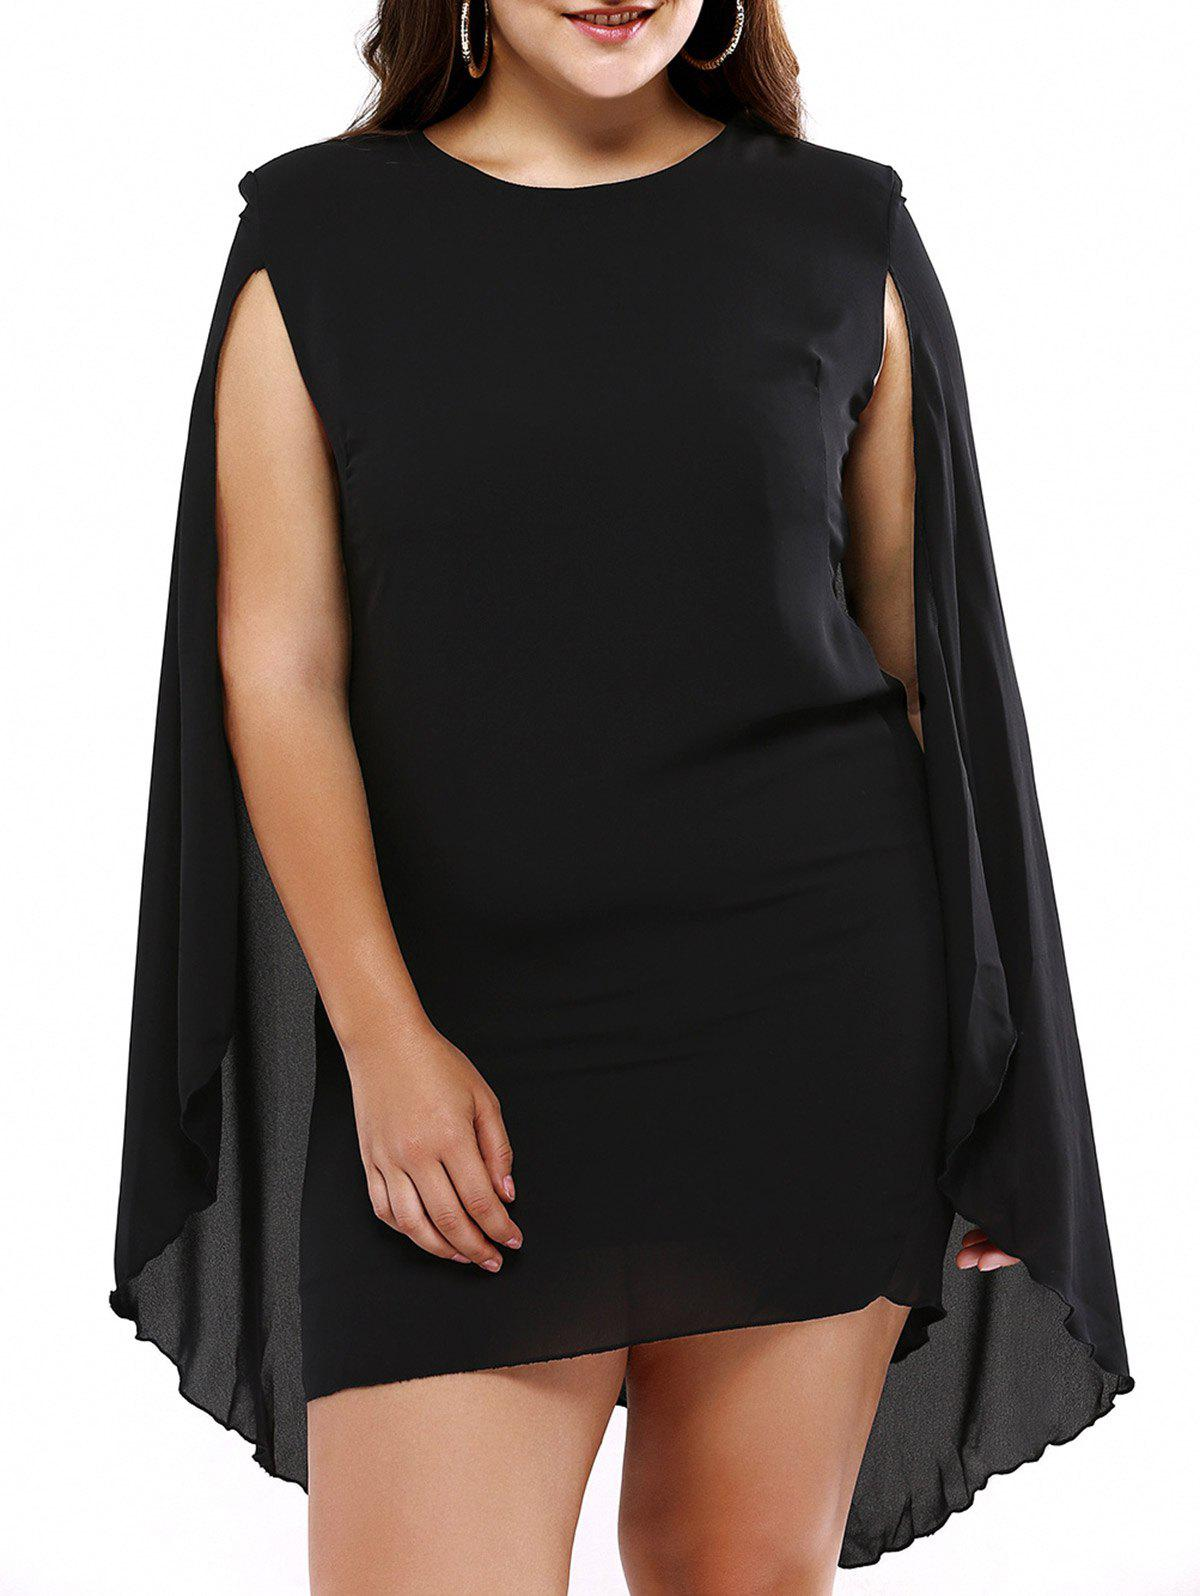 Plus Size Novelty Cape Sleeve Black Dress plus size novelty cape sleeve black dress